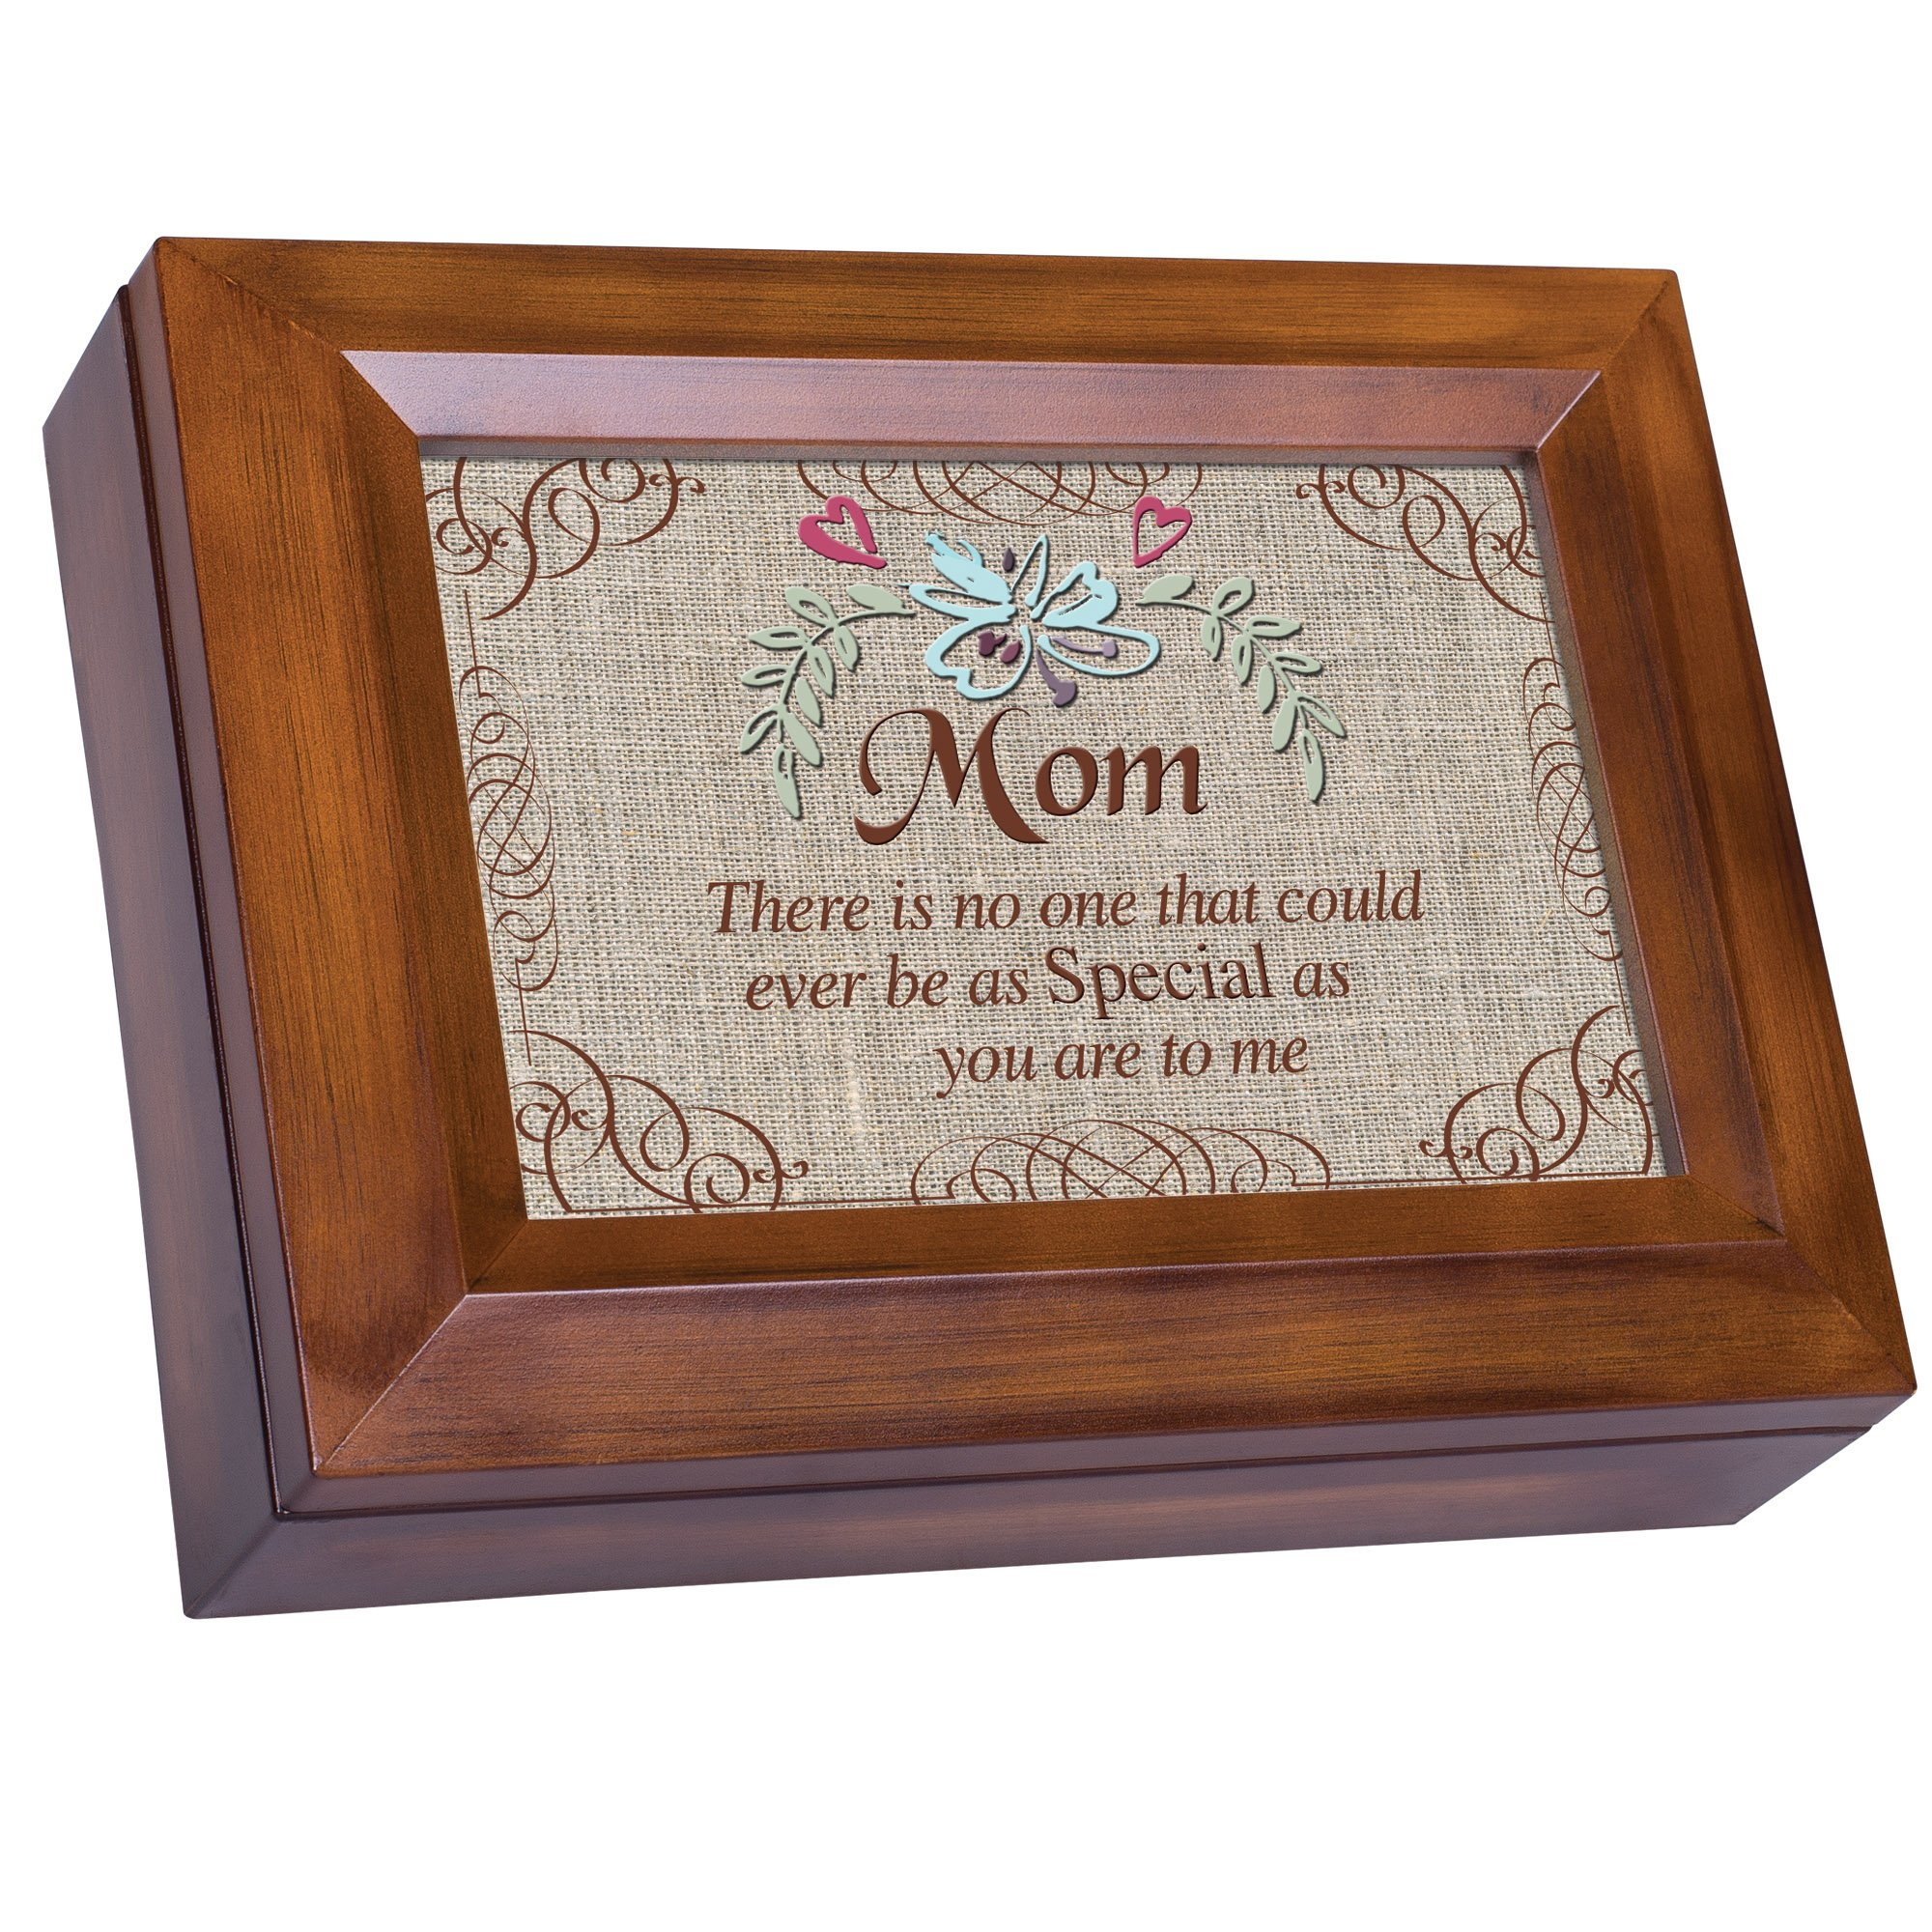 Special Mom Burlap Design Wood Finish Jewelry Music Box Plays You are My Sunshine